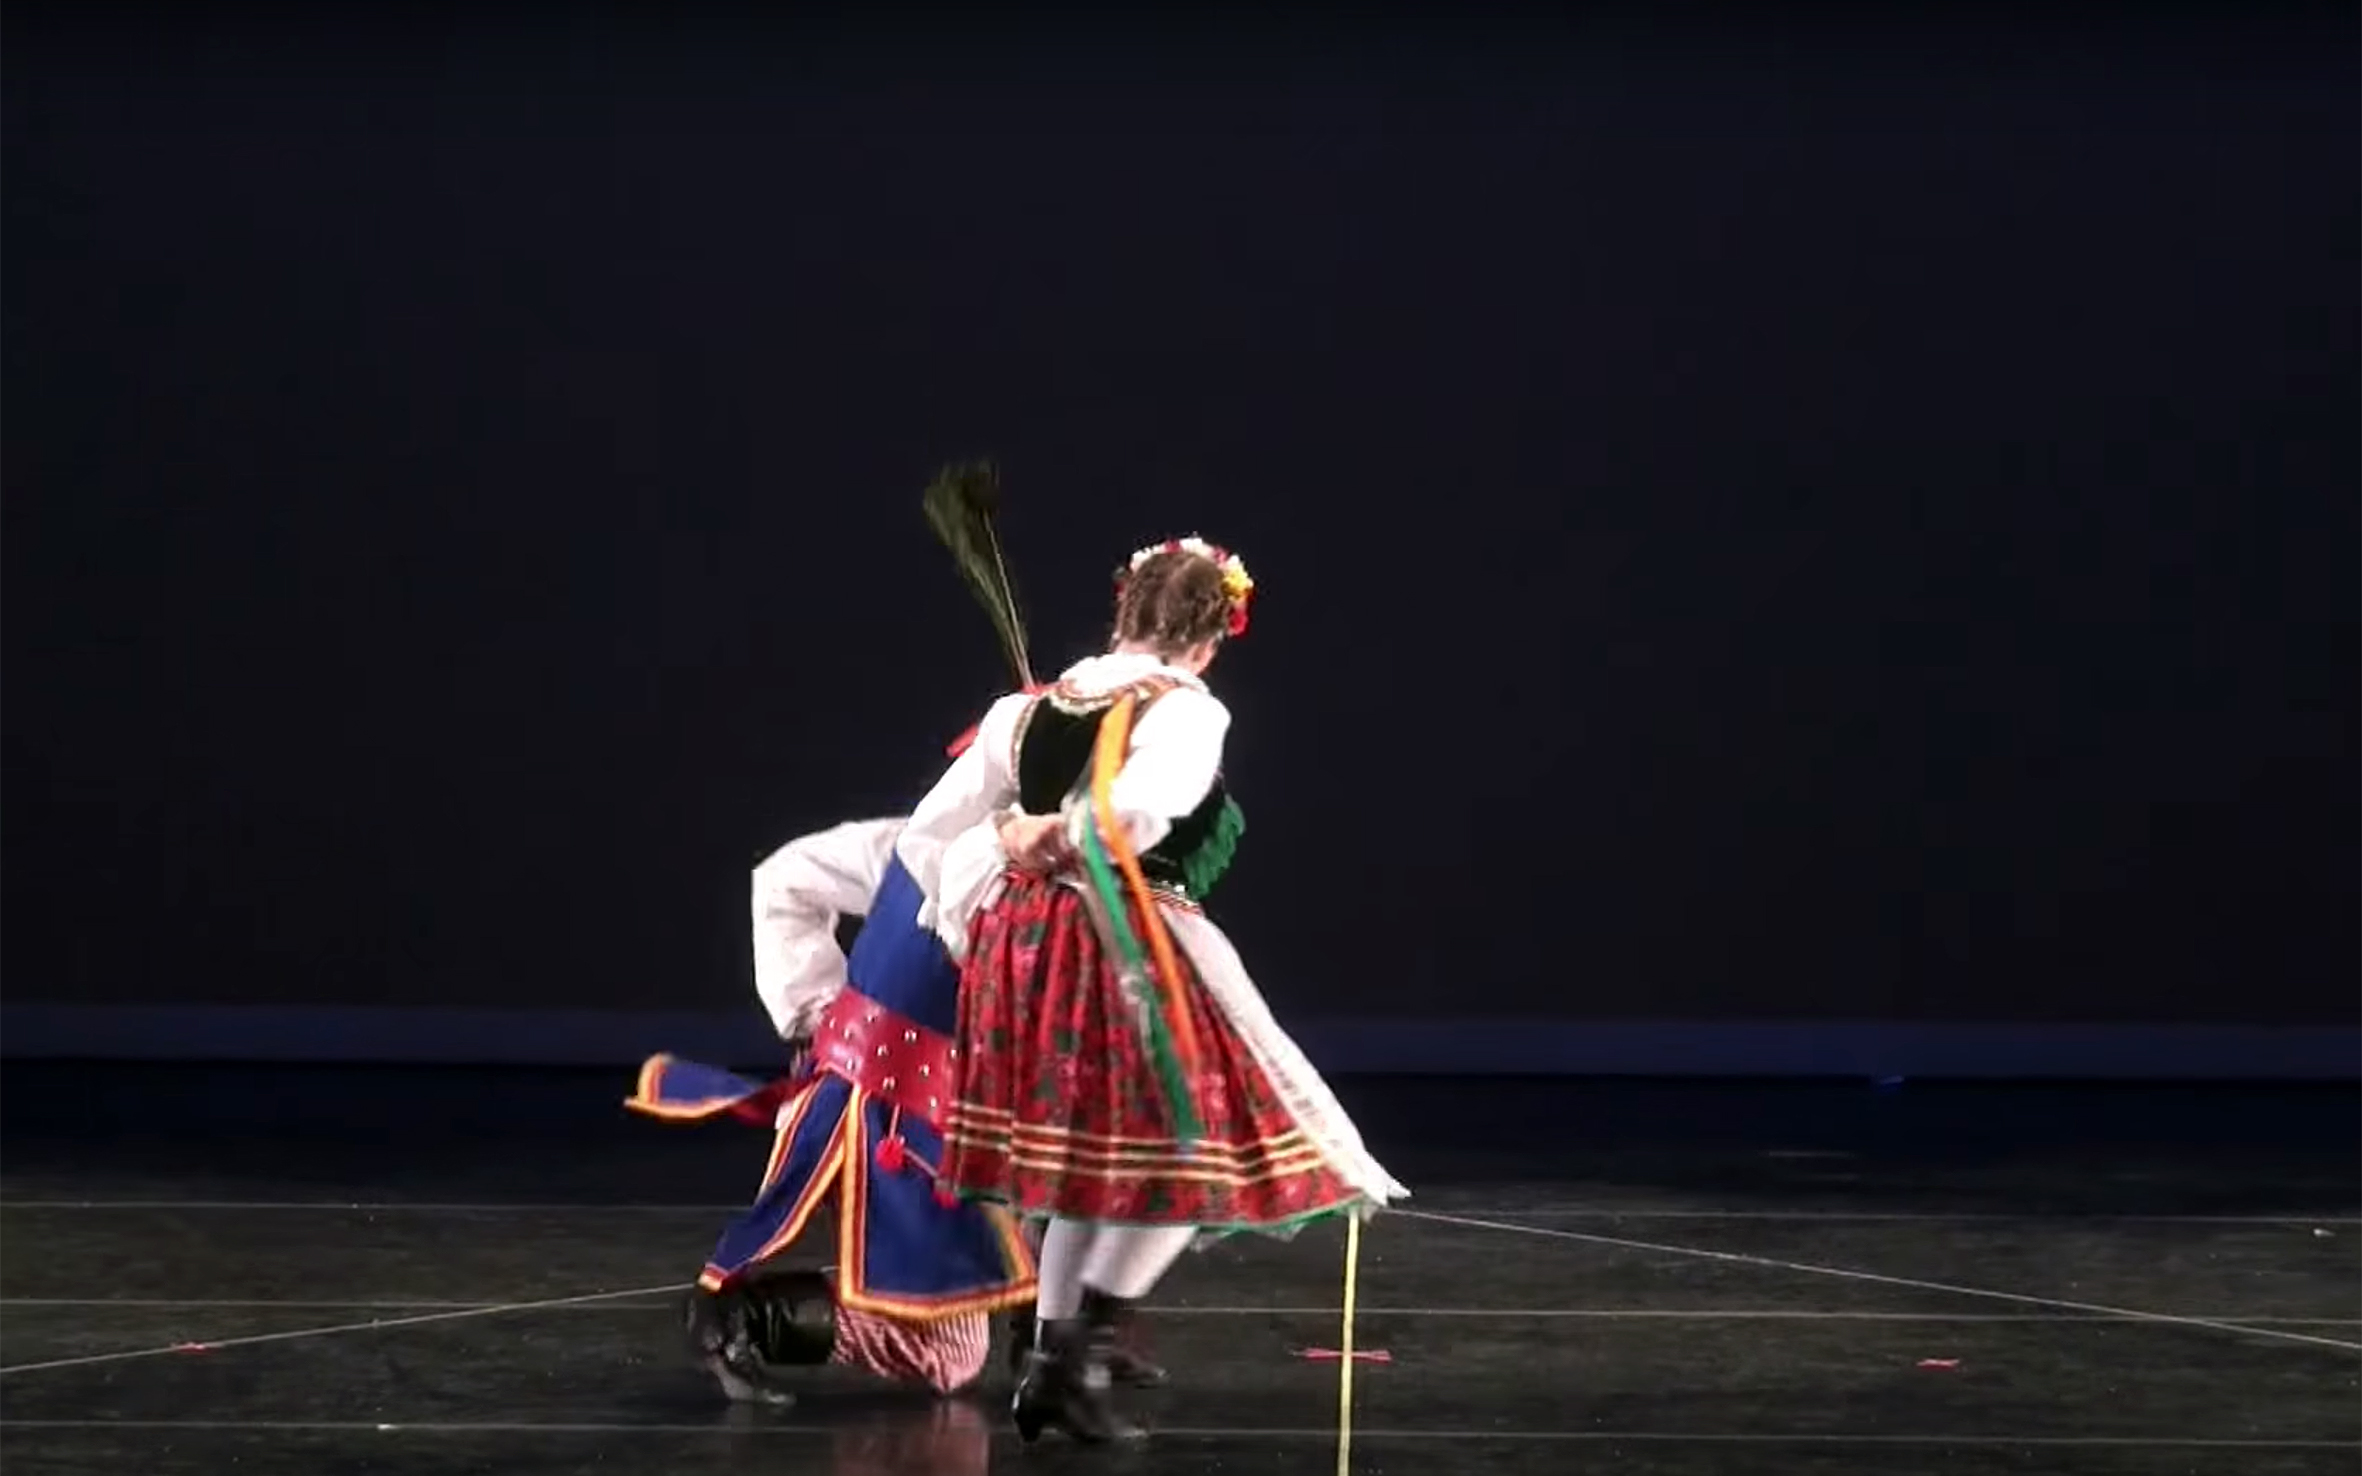 650.Oberek / Poland - Oberek is a lively Polish folk dance and the fastest of the Five National Dances of Poland. Its name is derived from Polish word